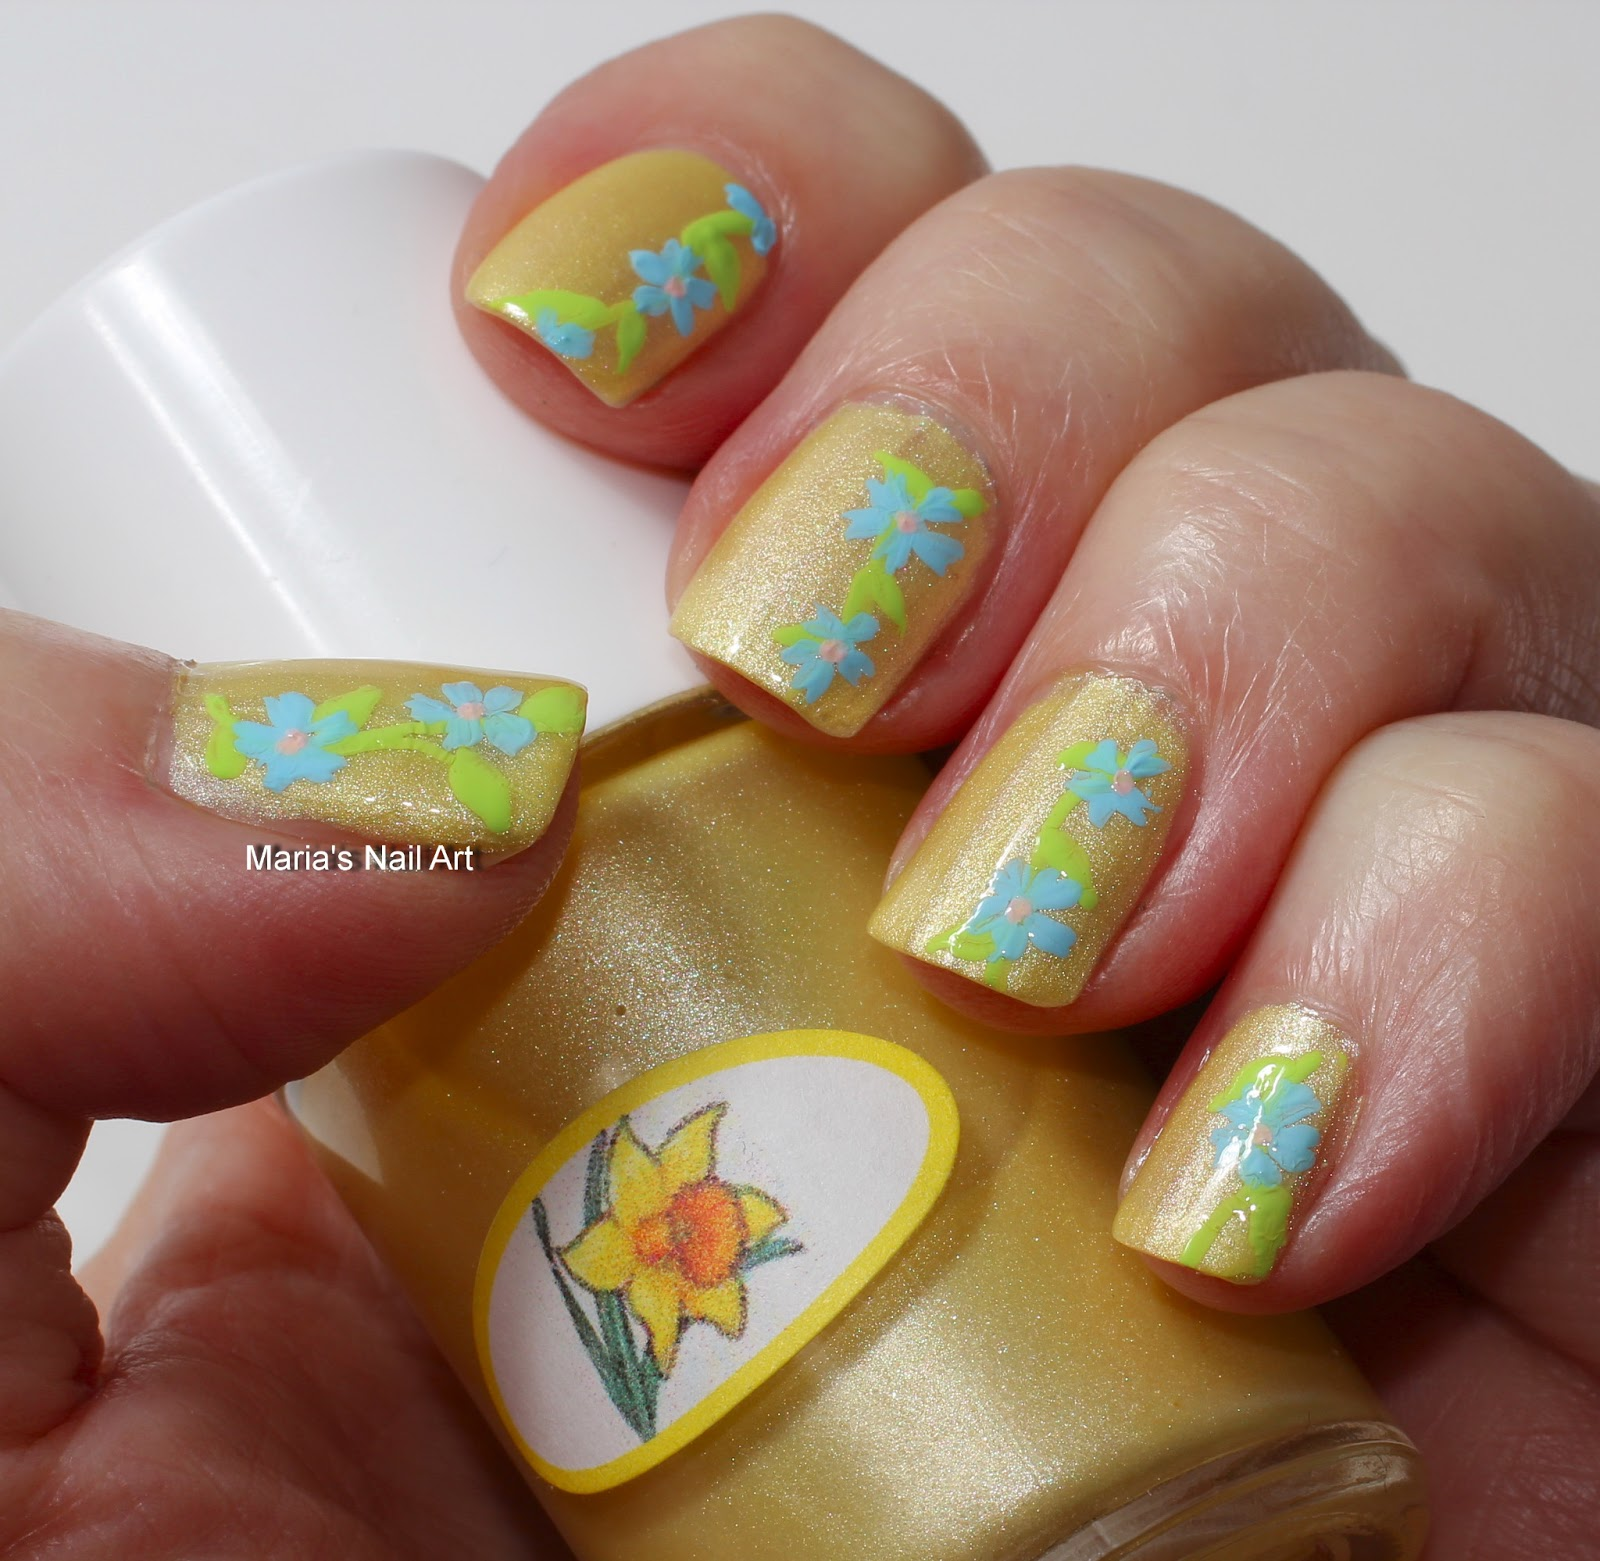 Marias Nail Art And Polish Blog Subtle Floral Nail Art On: Marias Nail Art And Polish Blog: Subtle Pastel Flowers On